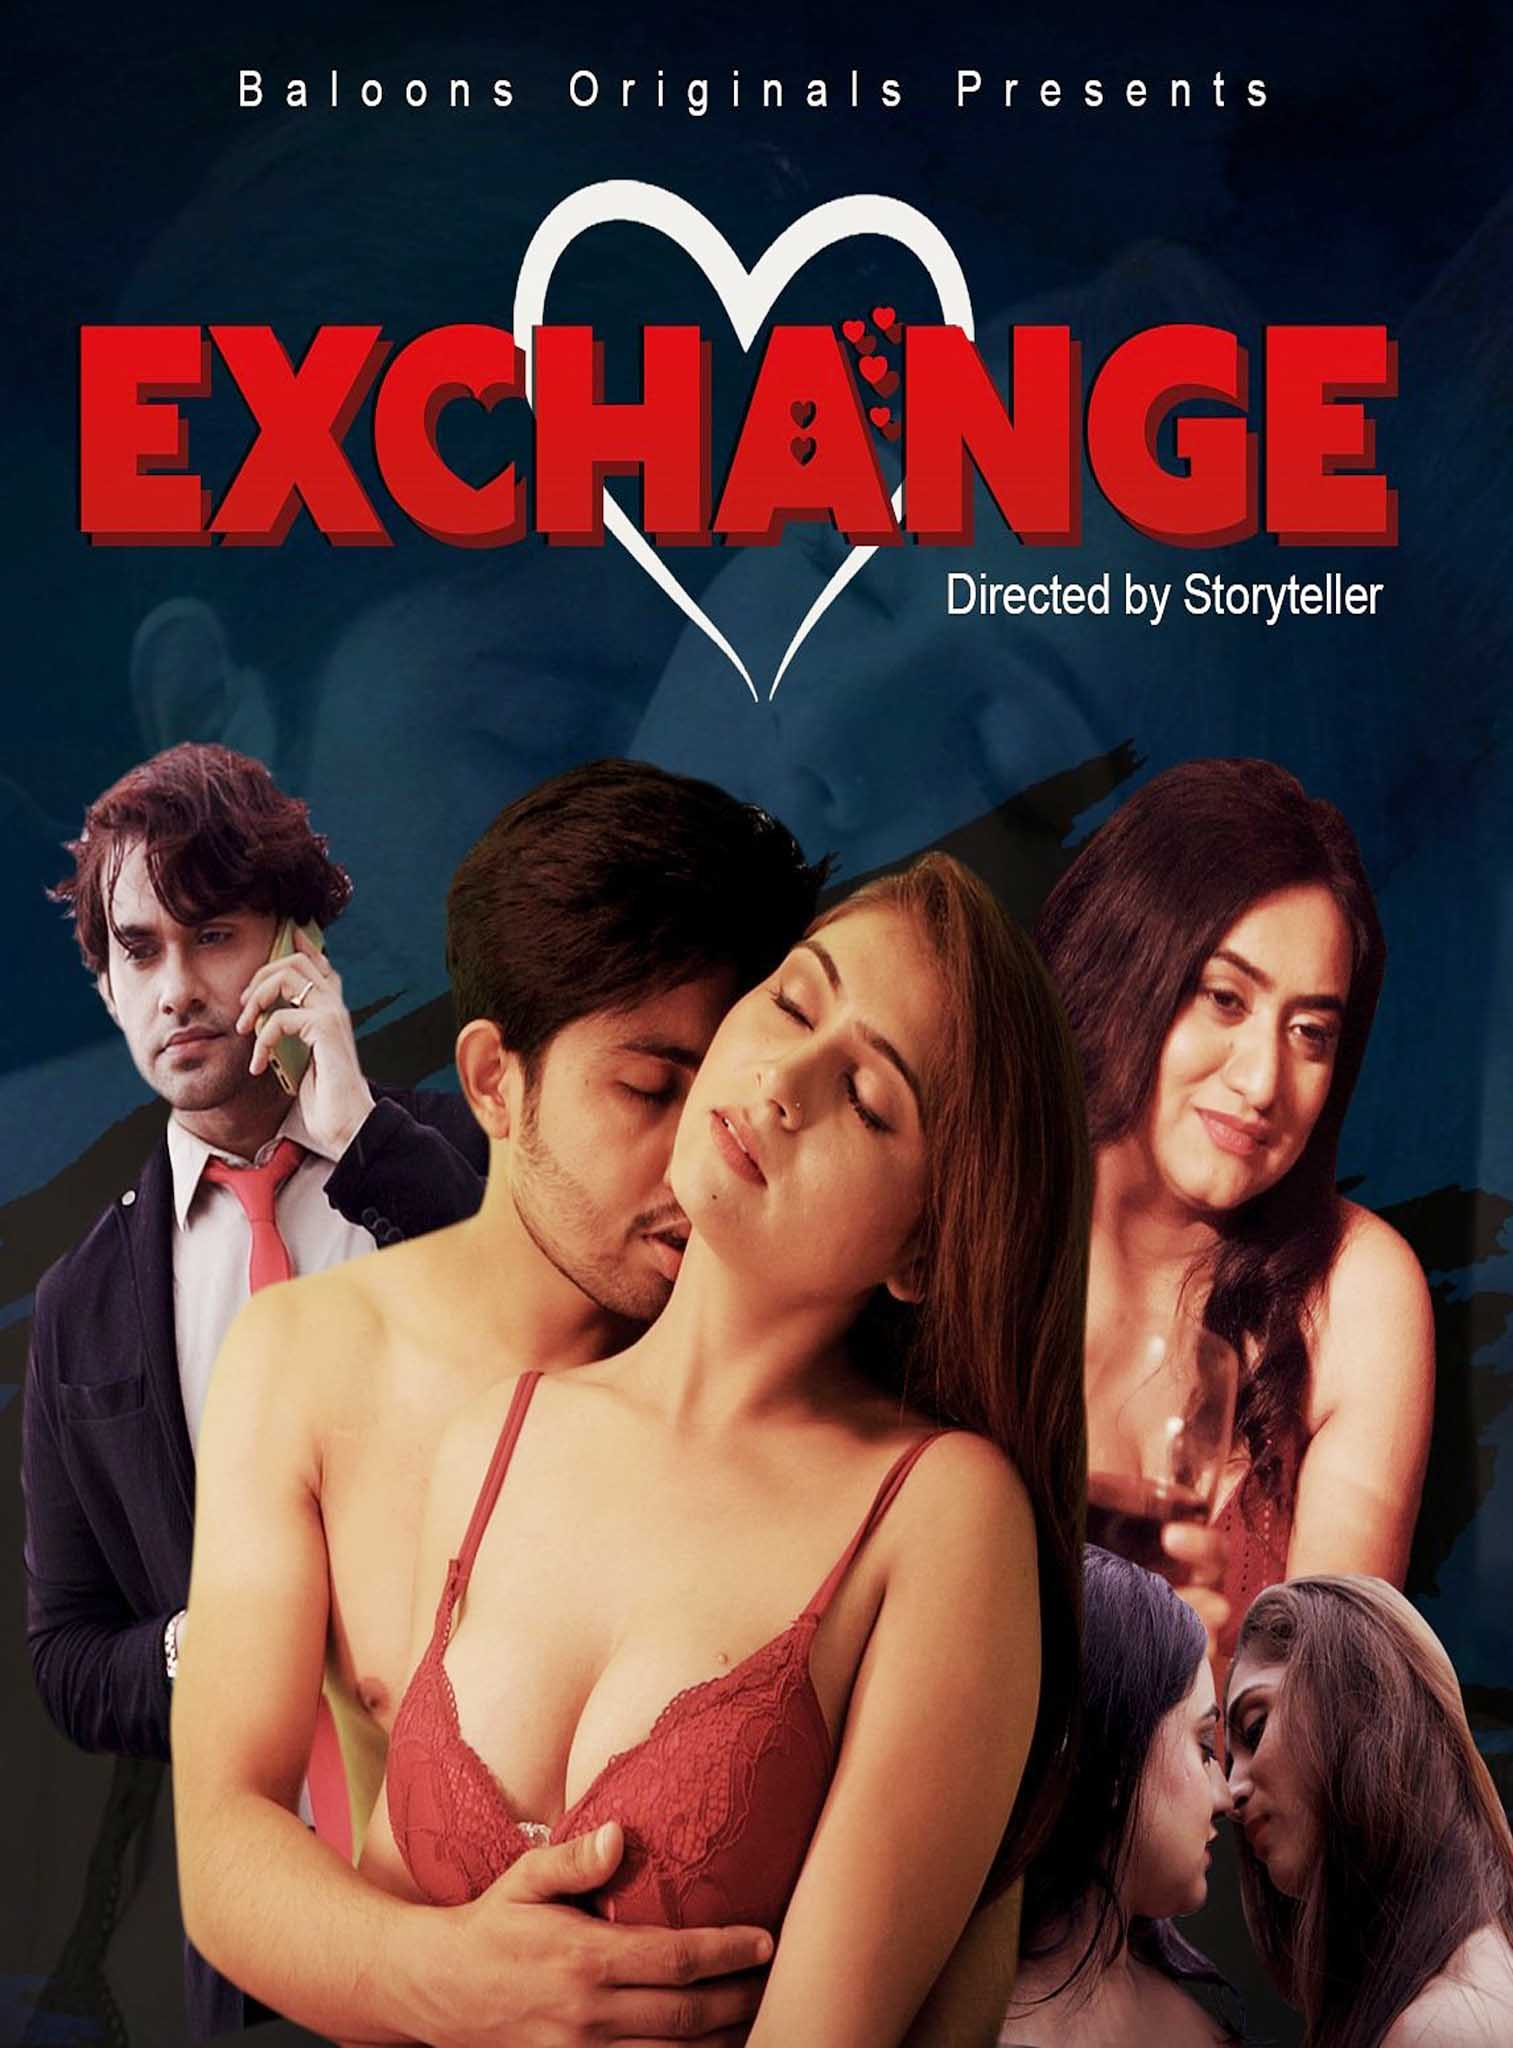 18+ Exchange 2020 Hindi S01E02 Balloons Web Series 720p HDRip 150MB x264 AAC